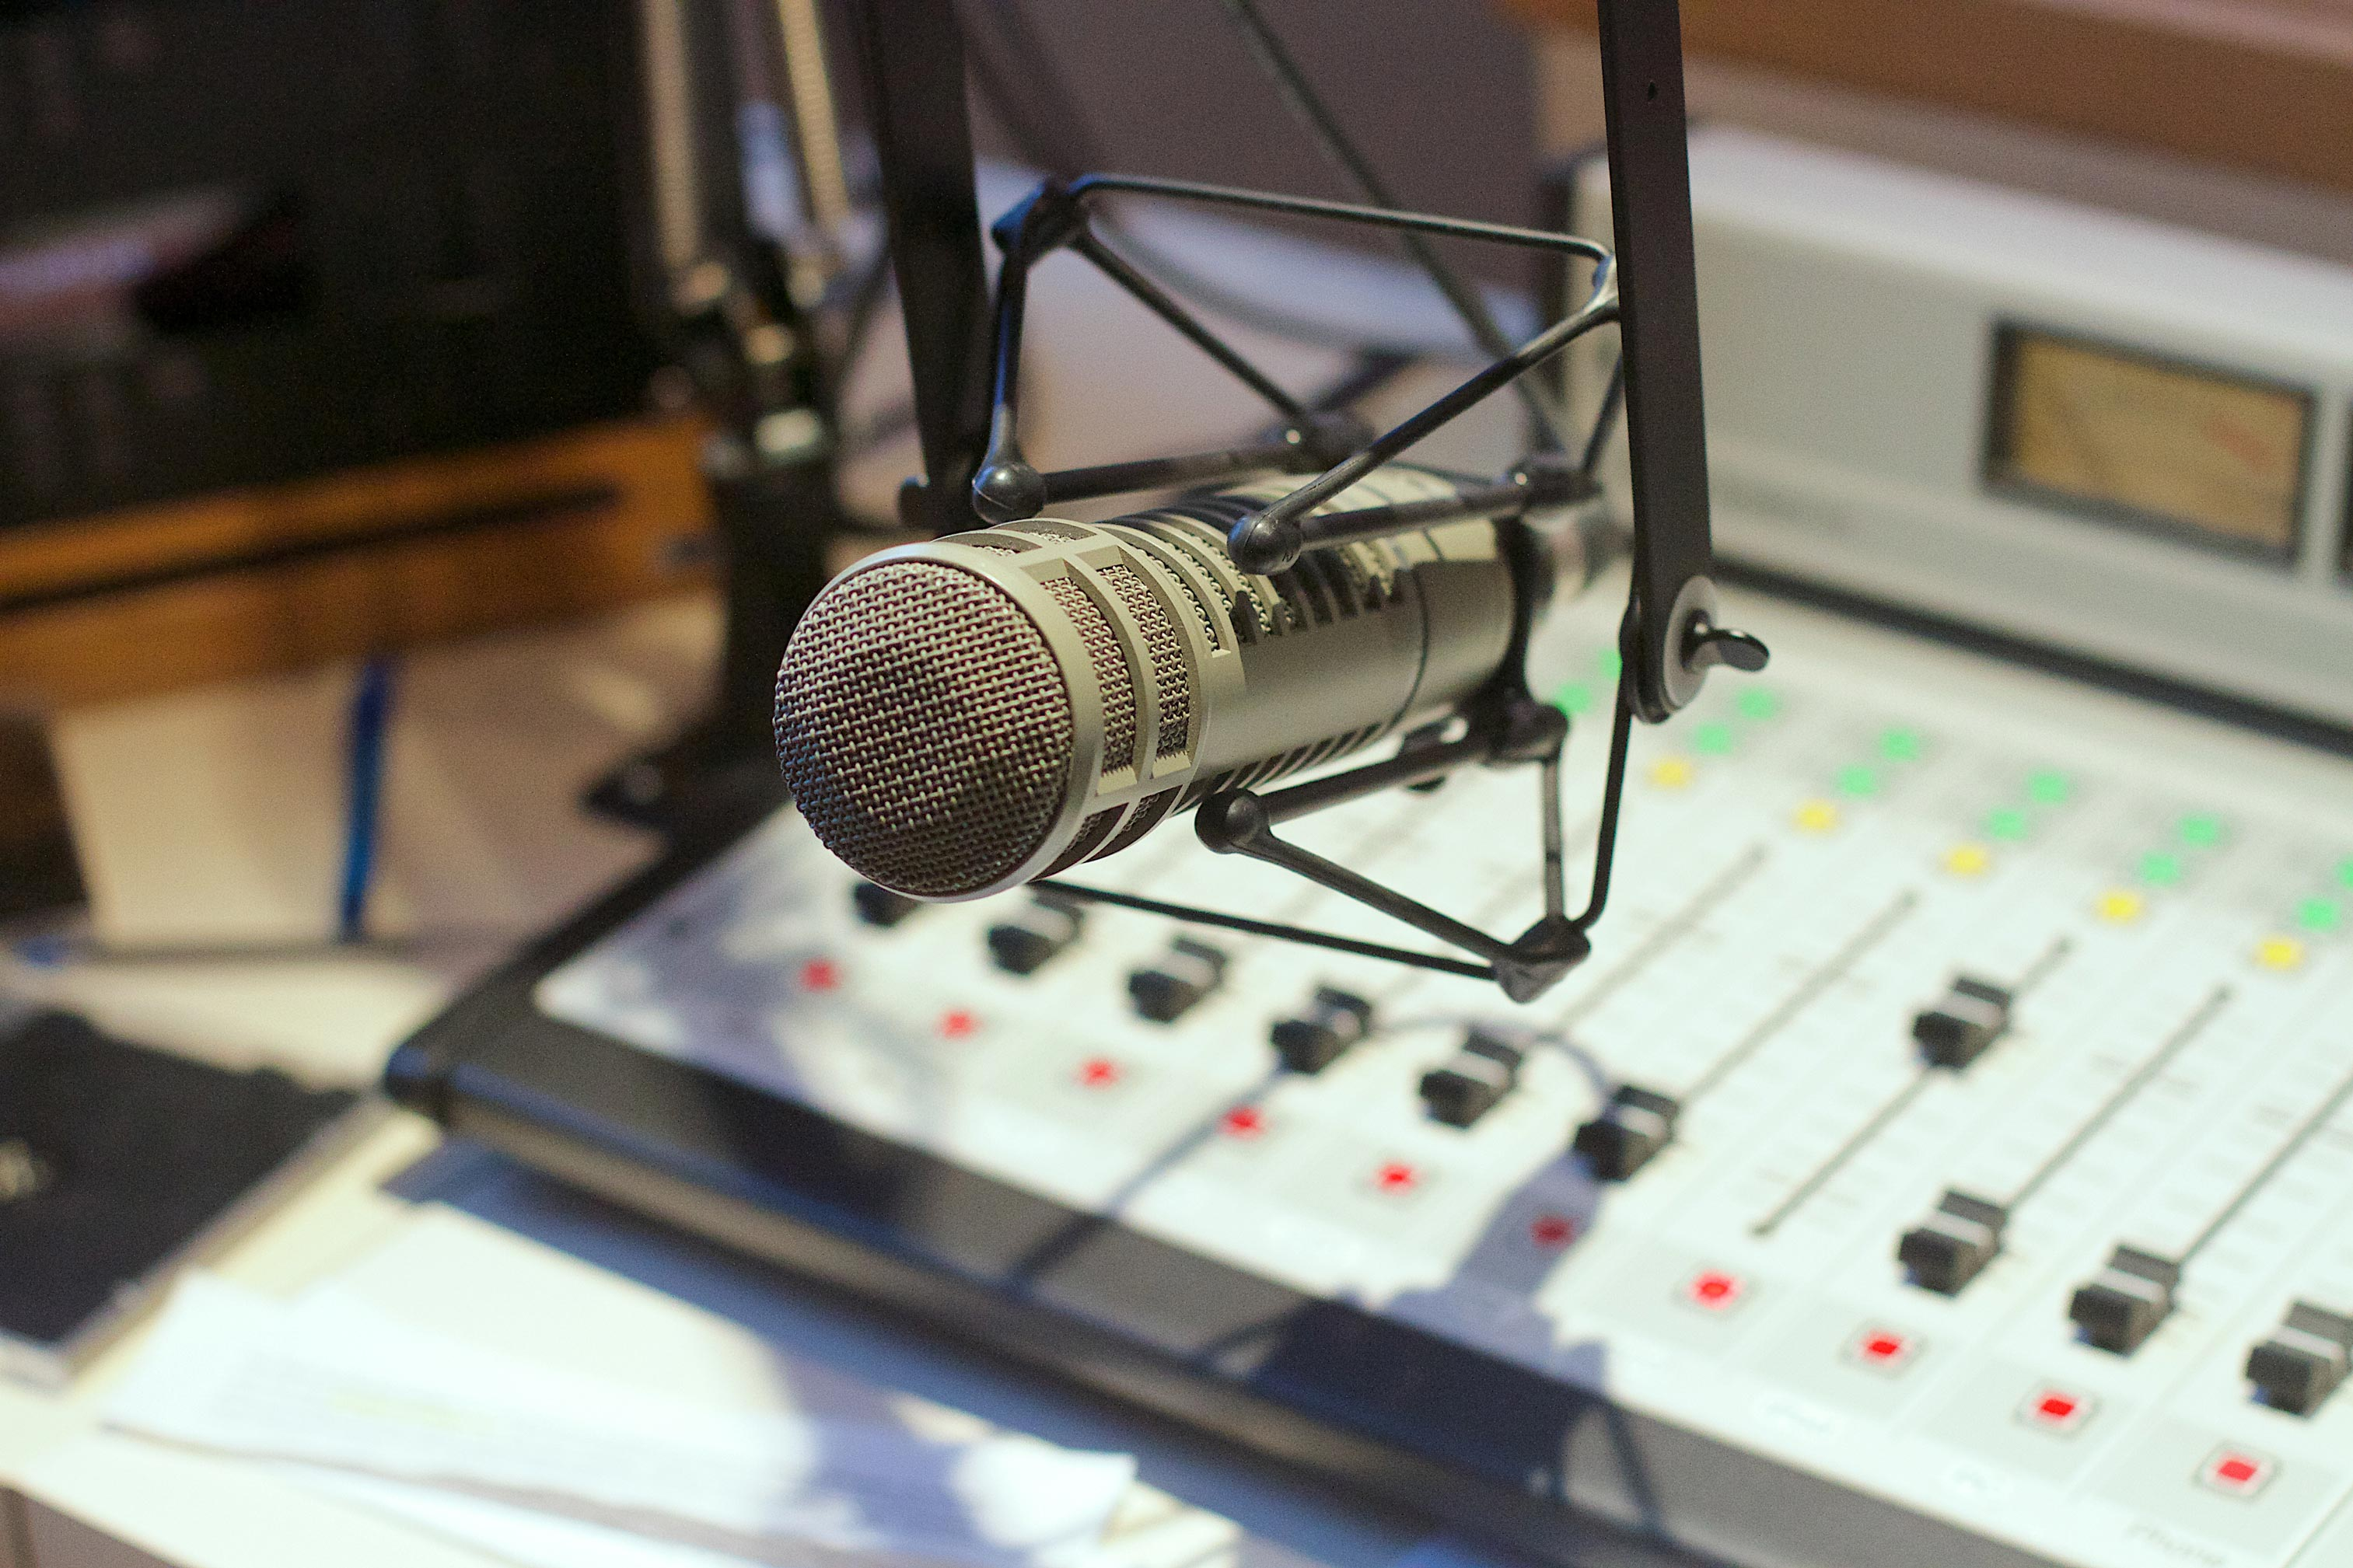 One of the two major Rwandan radio stations, RTLM, provided the most extreme and inflammatory messages.